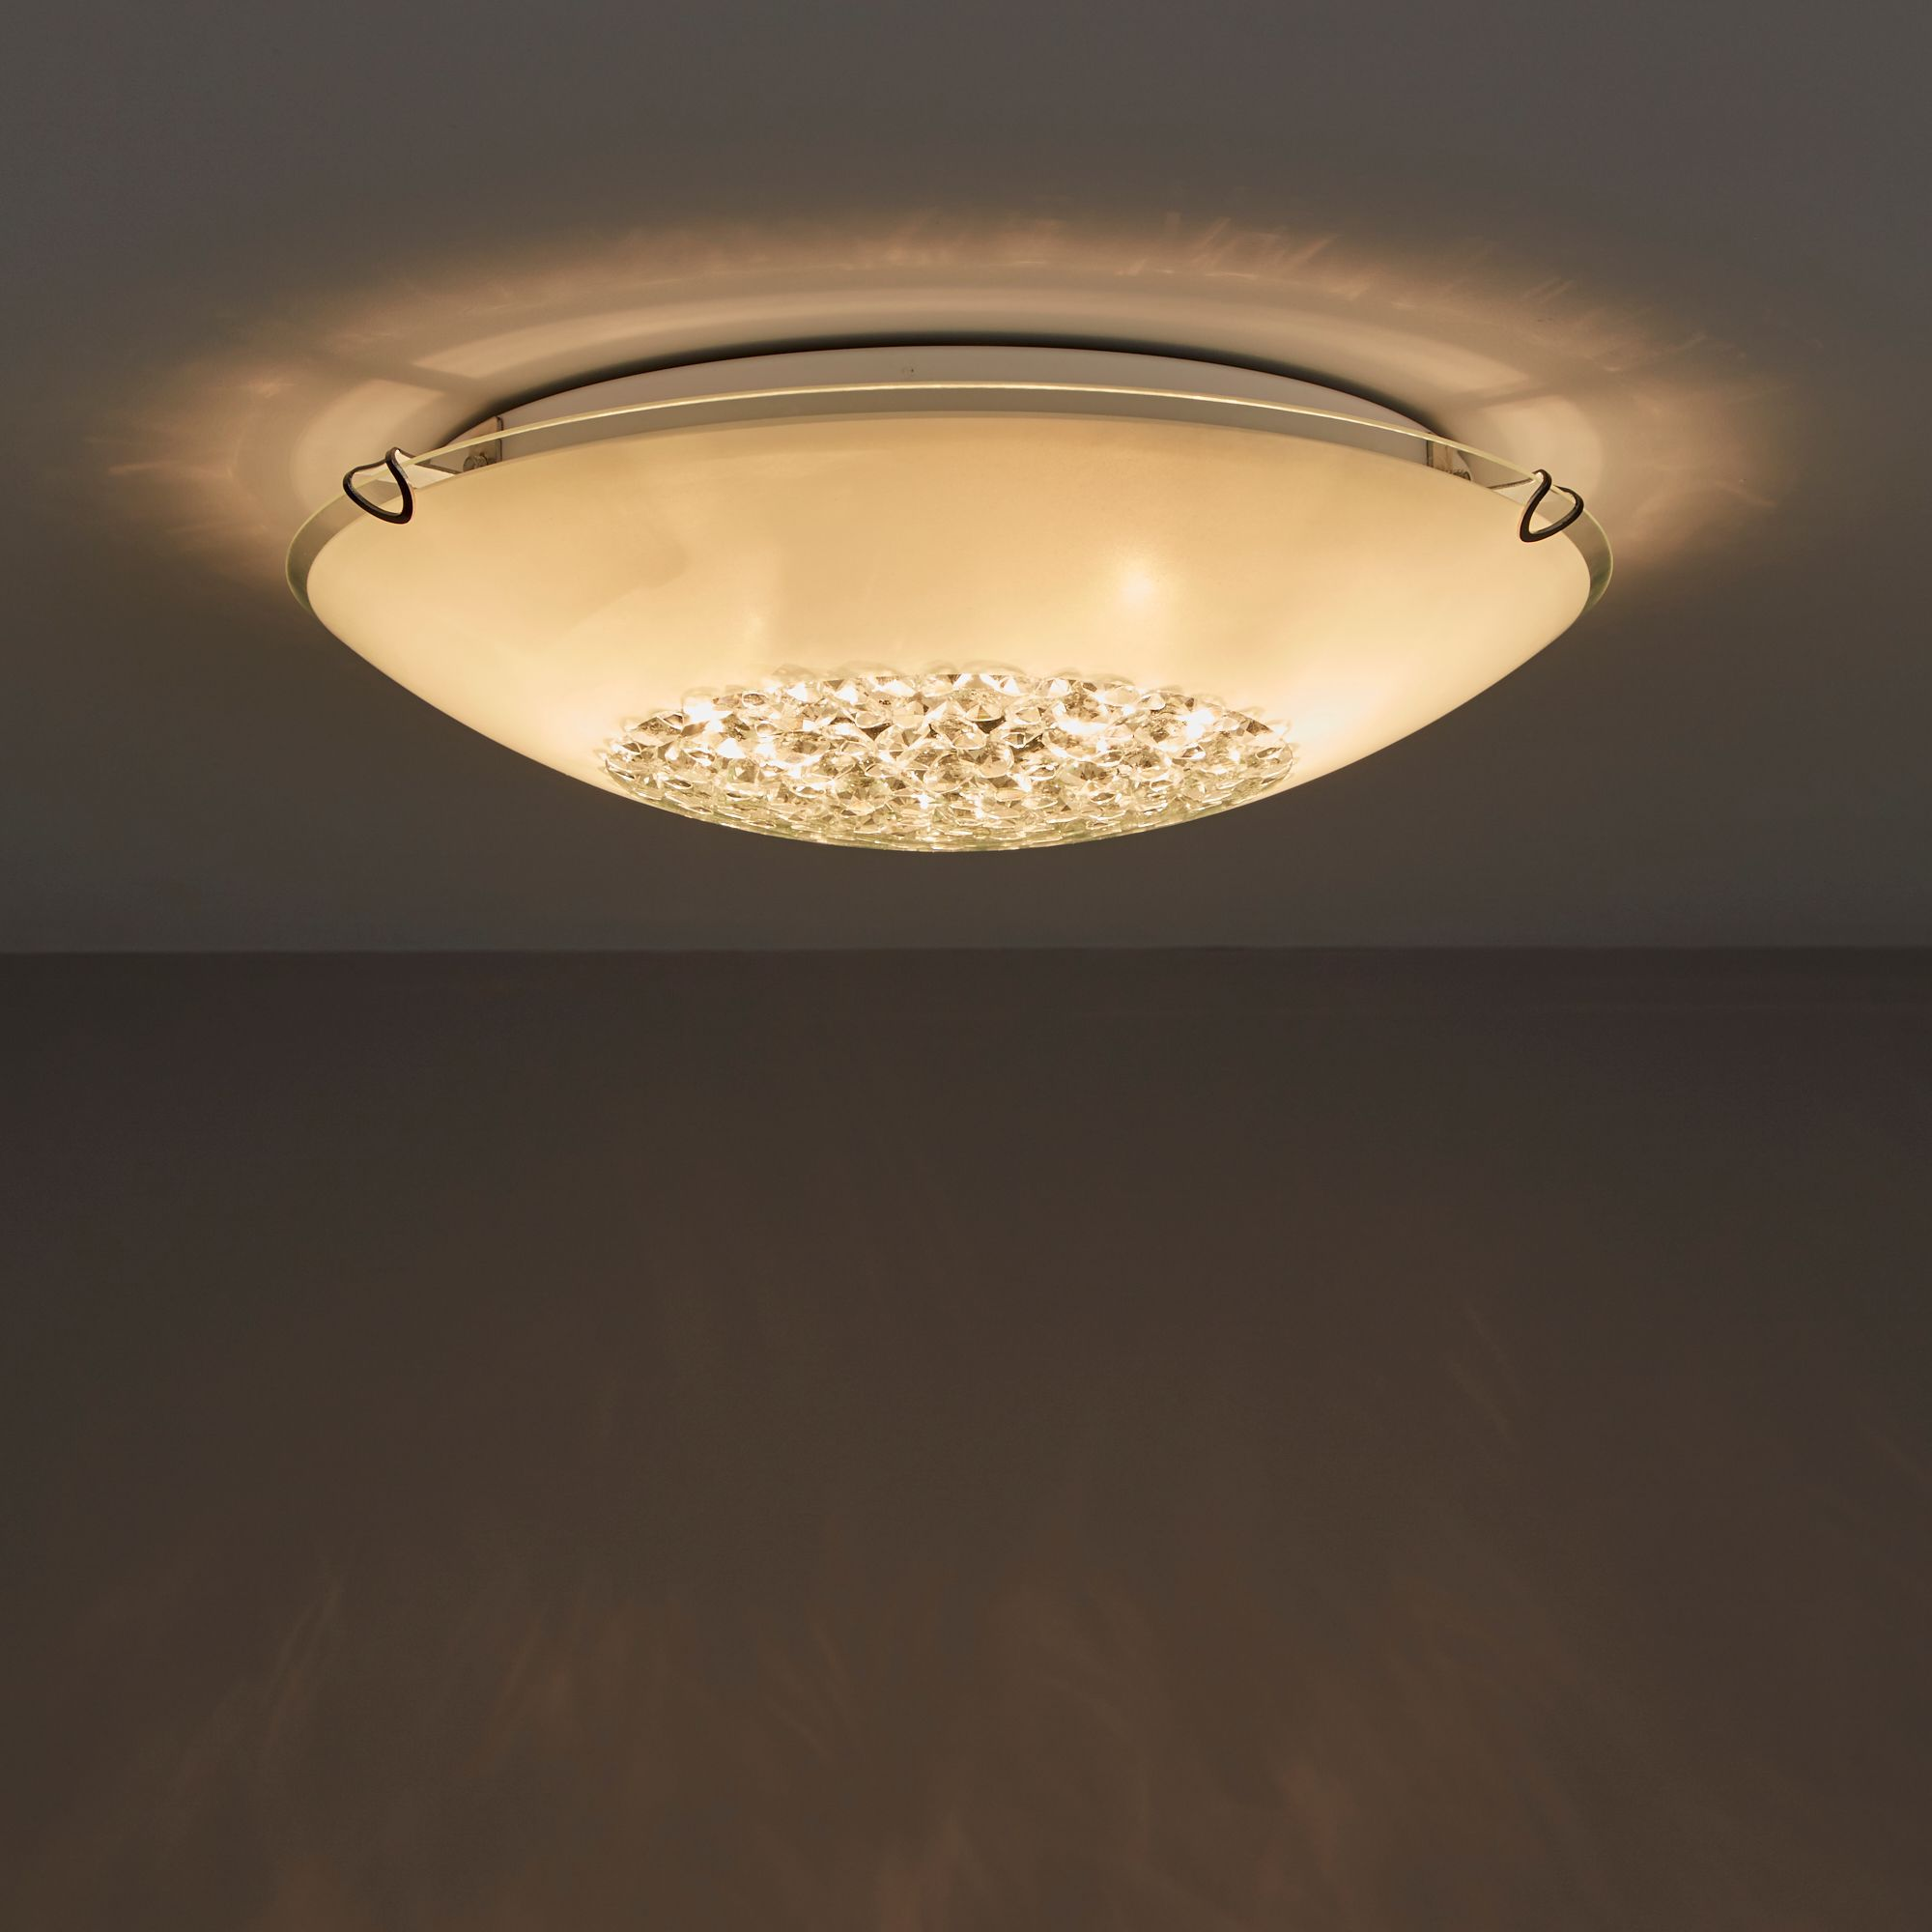 Glass Lamp Ceiling Gaia White 2 Lamp Ceiling Light Departments Diy At B Q